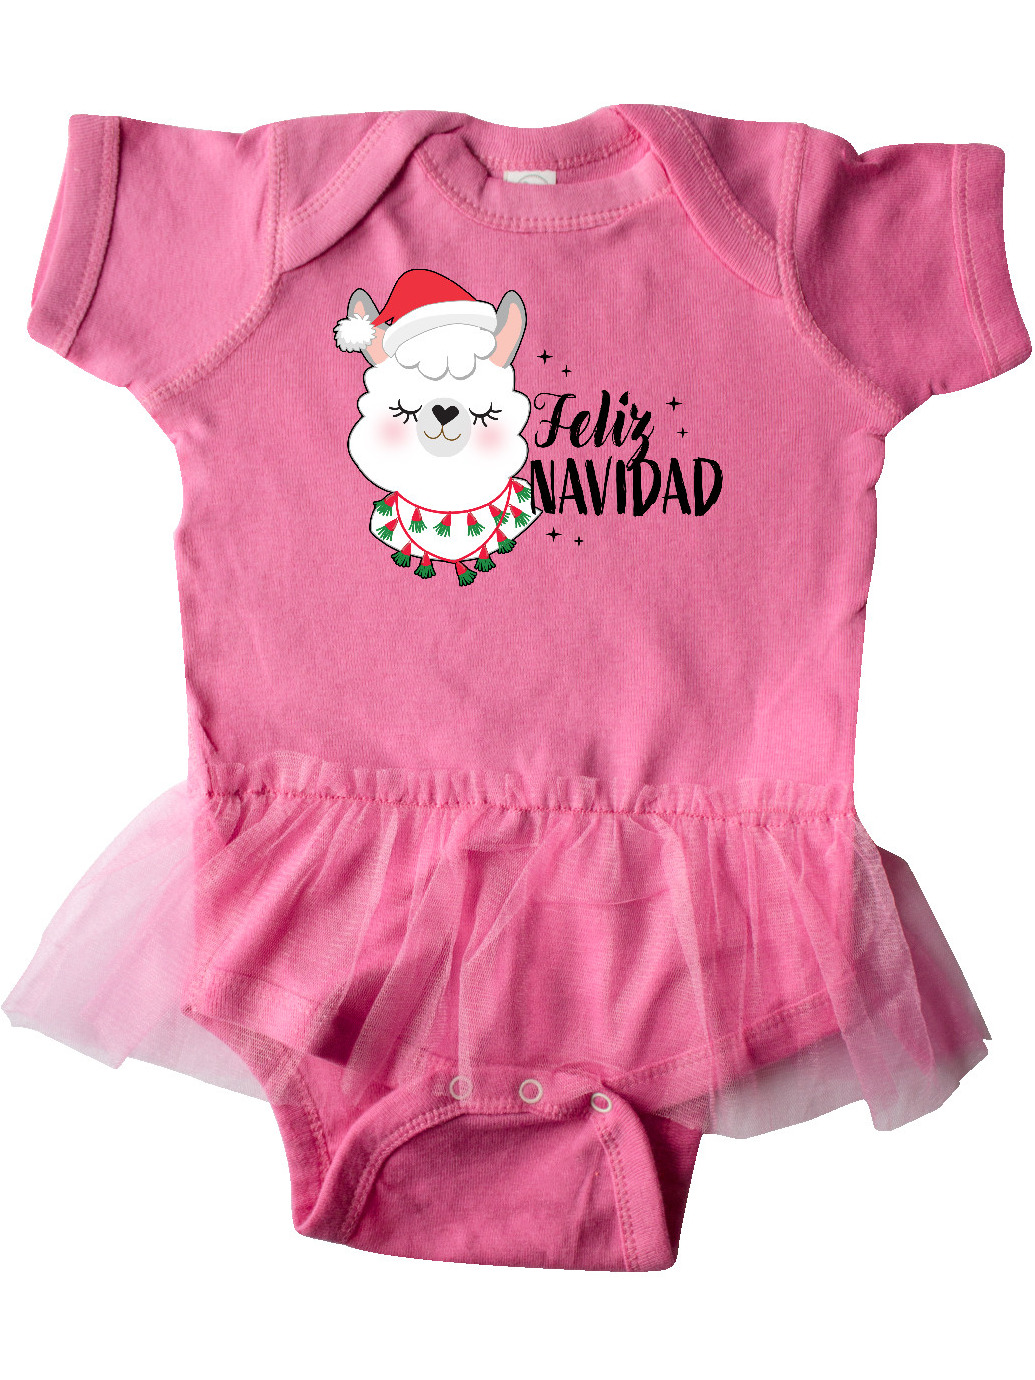 Cat In The Hat Infant Clothes : infant, clothes, Santa, Infant, Bodysuit, Inktastic, Christmas, Clothing, Girls